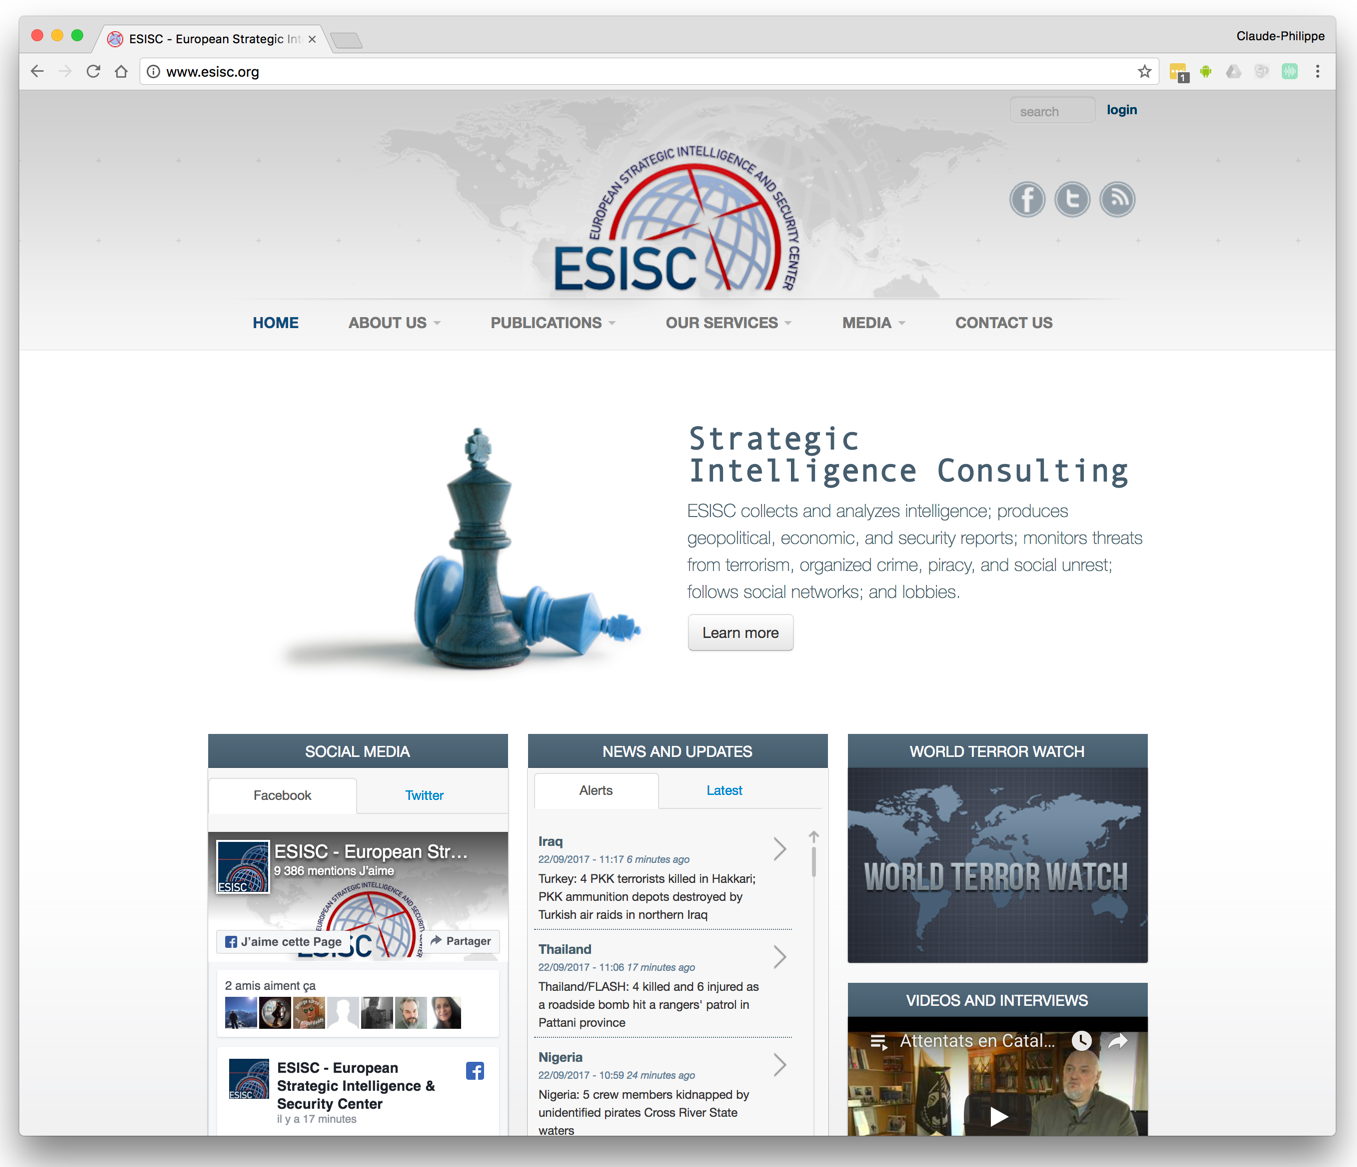 ESISC Website & World Terror Watch